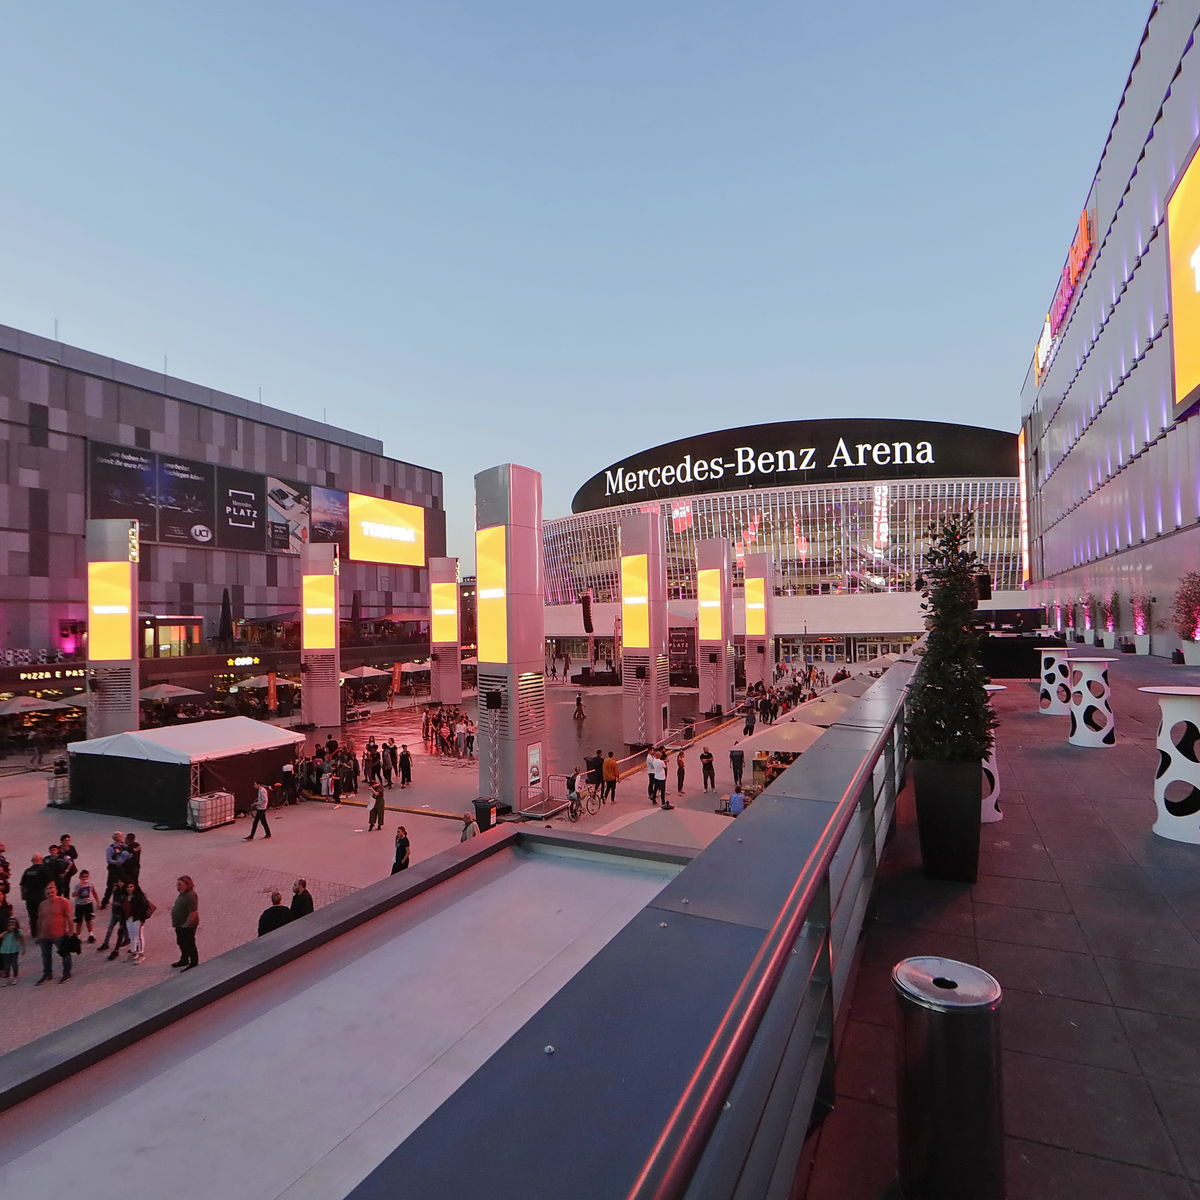 Exterior Image of Mercedes-Benz Arena and district at night